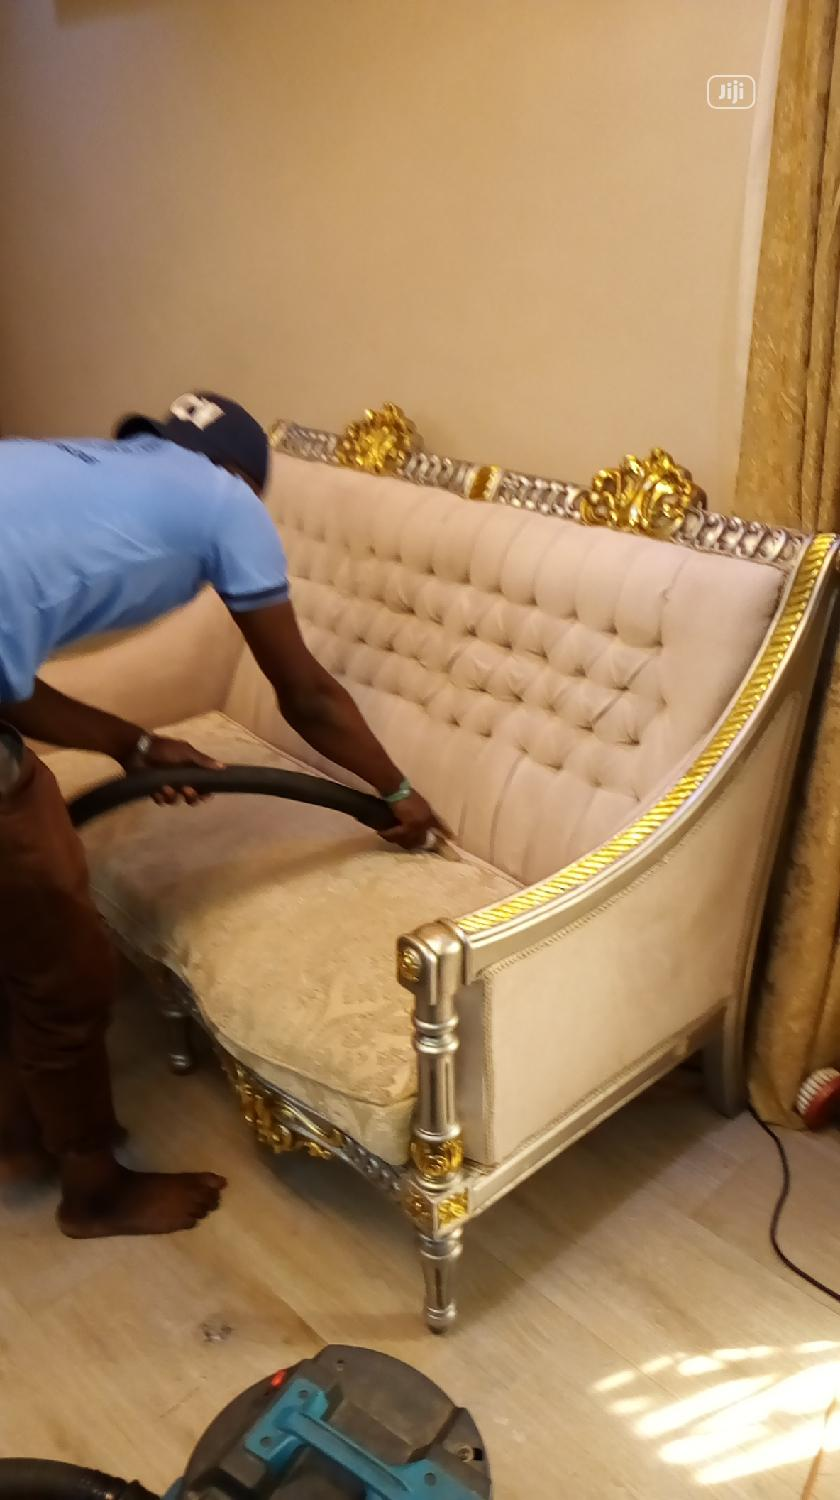 Chair Upholstery And Leather Cleaning And Maintenance | Cleaning Services for sale in Lekki Phase 1, Lagos State, Nigeria